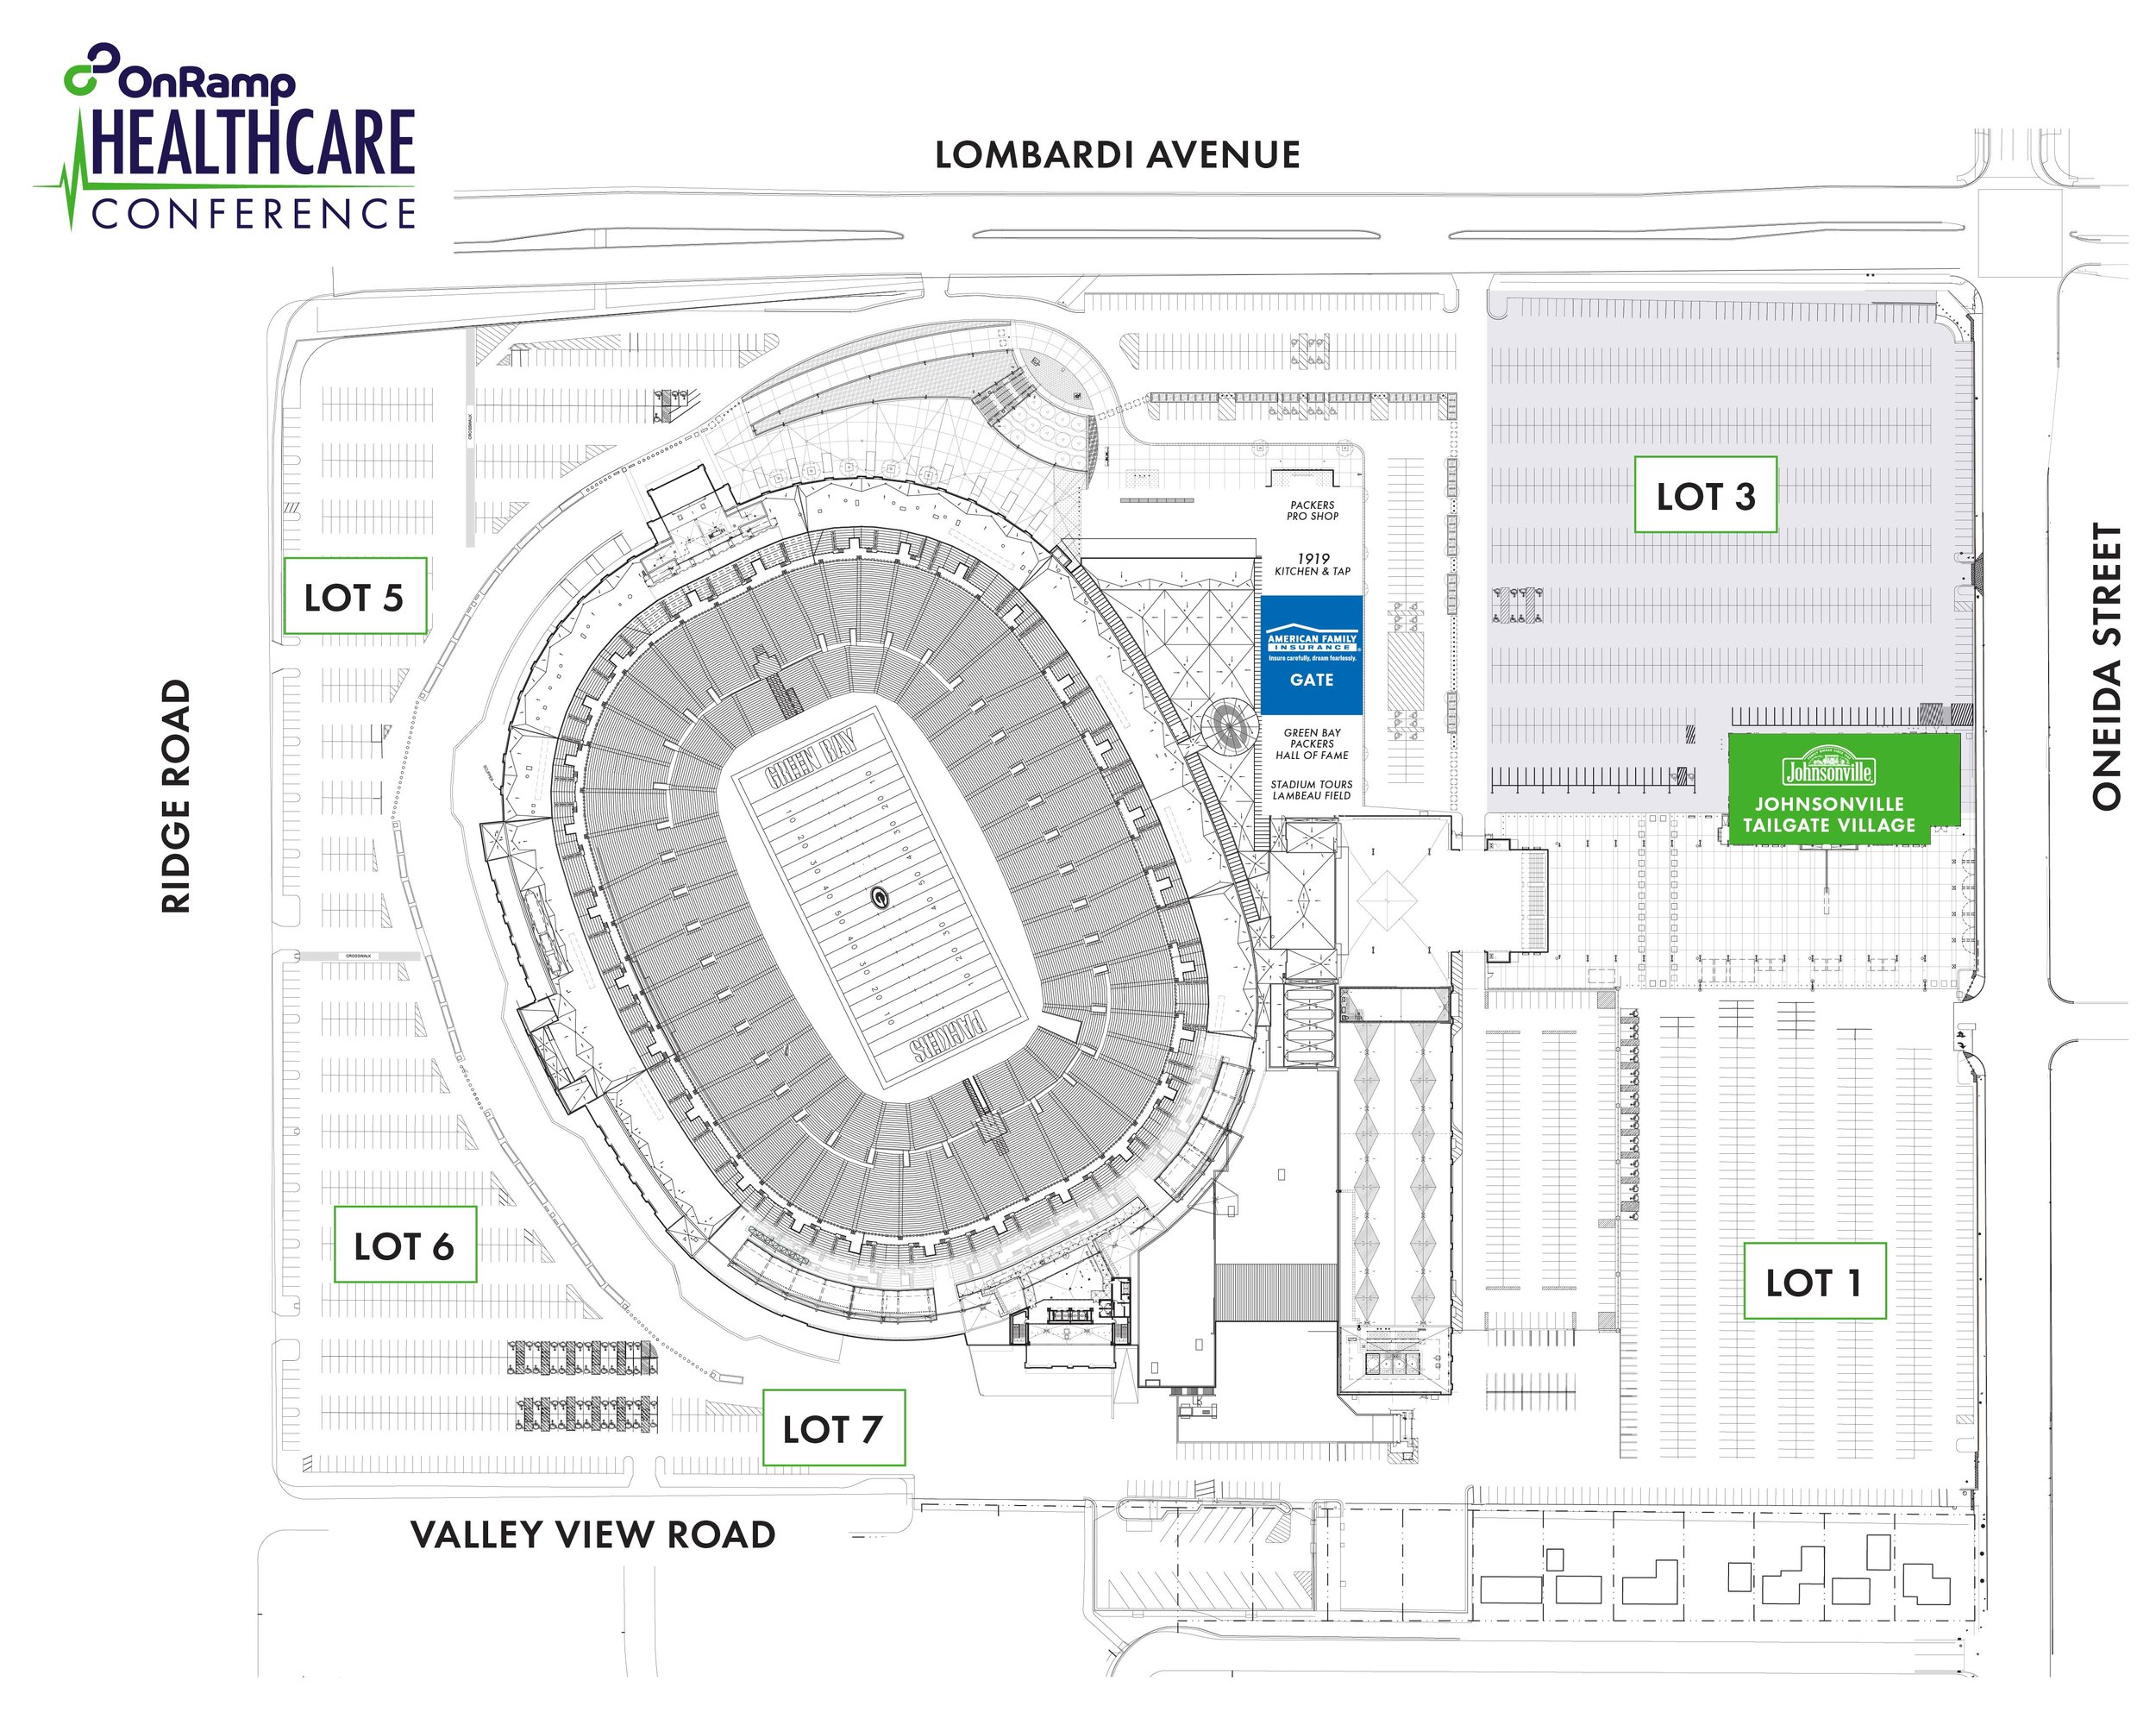 Arriving at Lambeau  - Lambeau Field is located at 1265 Lombardi Avenue, Green Bay, WI 54304.If you are driving to Lambeau Field, please park in Lot 3 off of Lombardi Avenue or in Lot 2 off of Oneida Street. You will enter through the American Family Insurance gate (see map on next page.)If you are arriving by Uber, Taxi or foot, you may alternatively enter the venue through the Miller Lite gate.Guests can park in Lot 3 off of Lombardi Avenue or in Lot 2 off of Oneida Street. Please enter through the American Family Insurance gate.